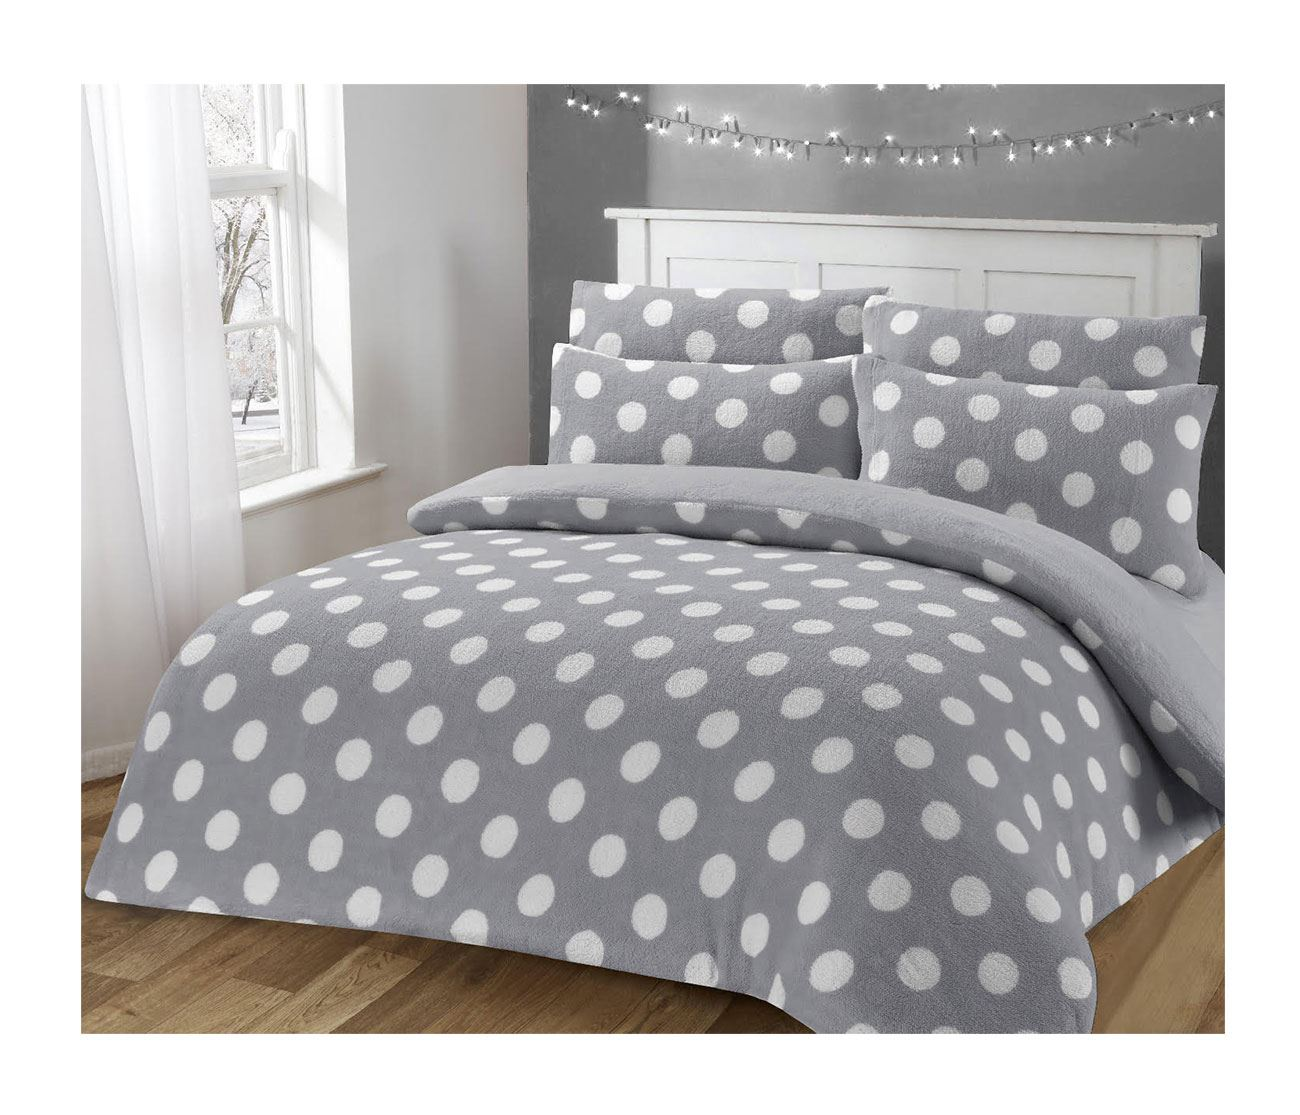 Elegant Style Polka Dot teddy Fleece Duvet Cover Set